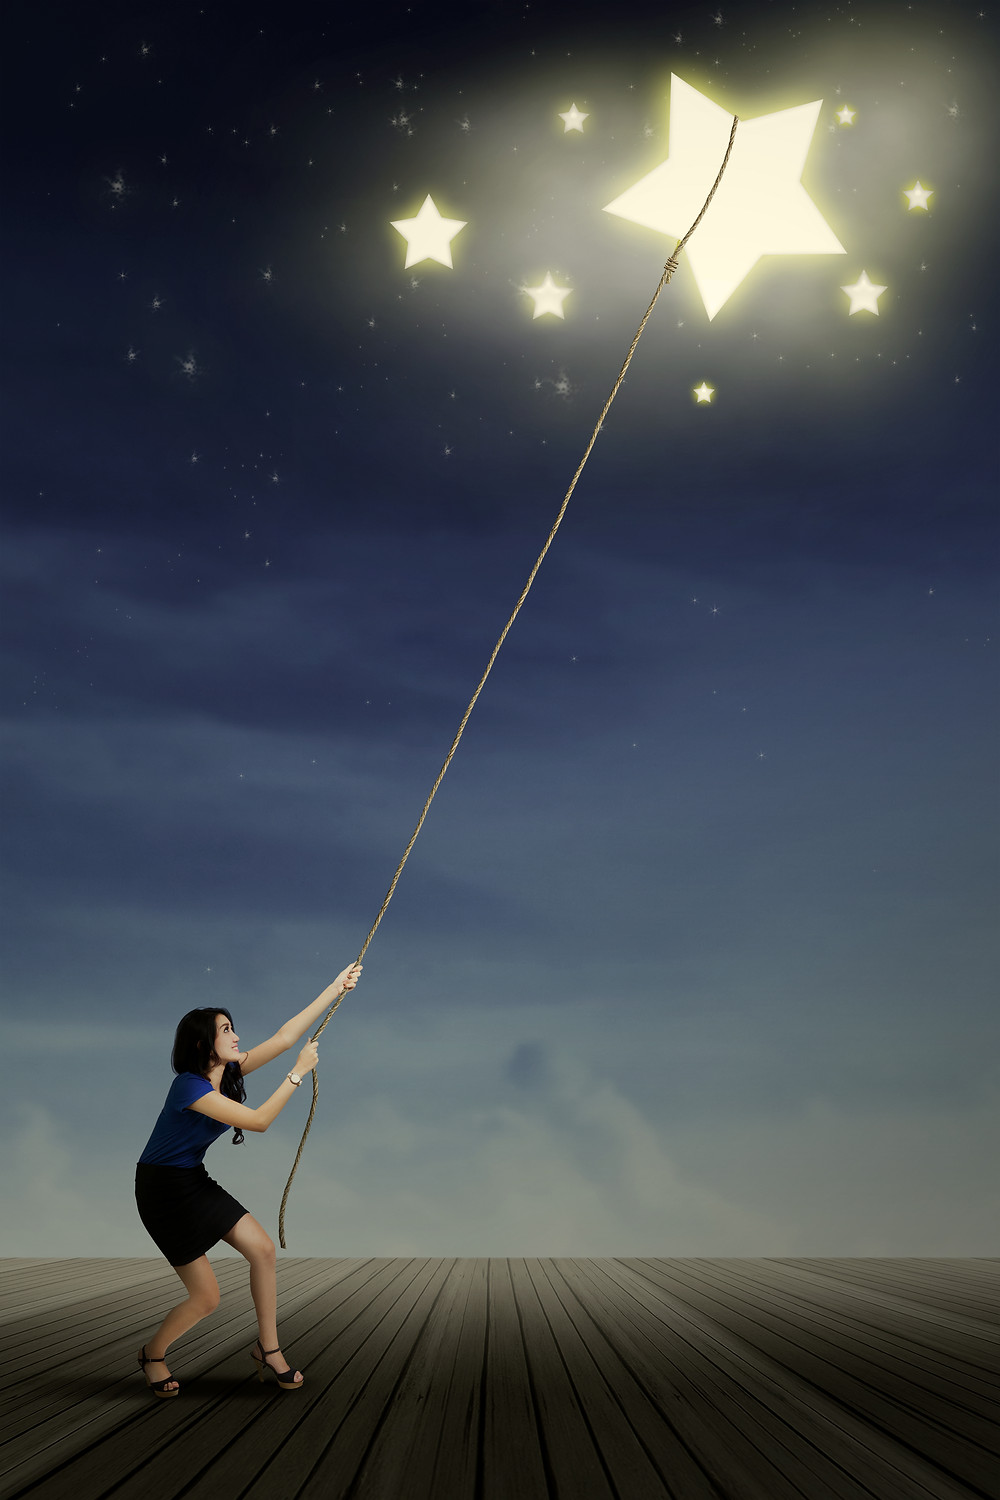 Teen girl roping a star. Represents counseling services katy texas 77494. Also represents EMDR in houston texas.